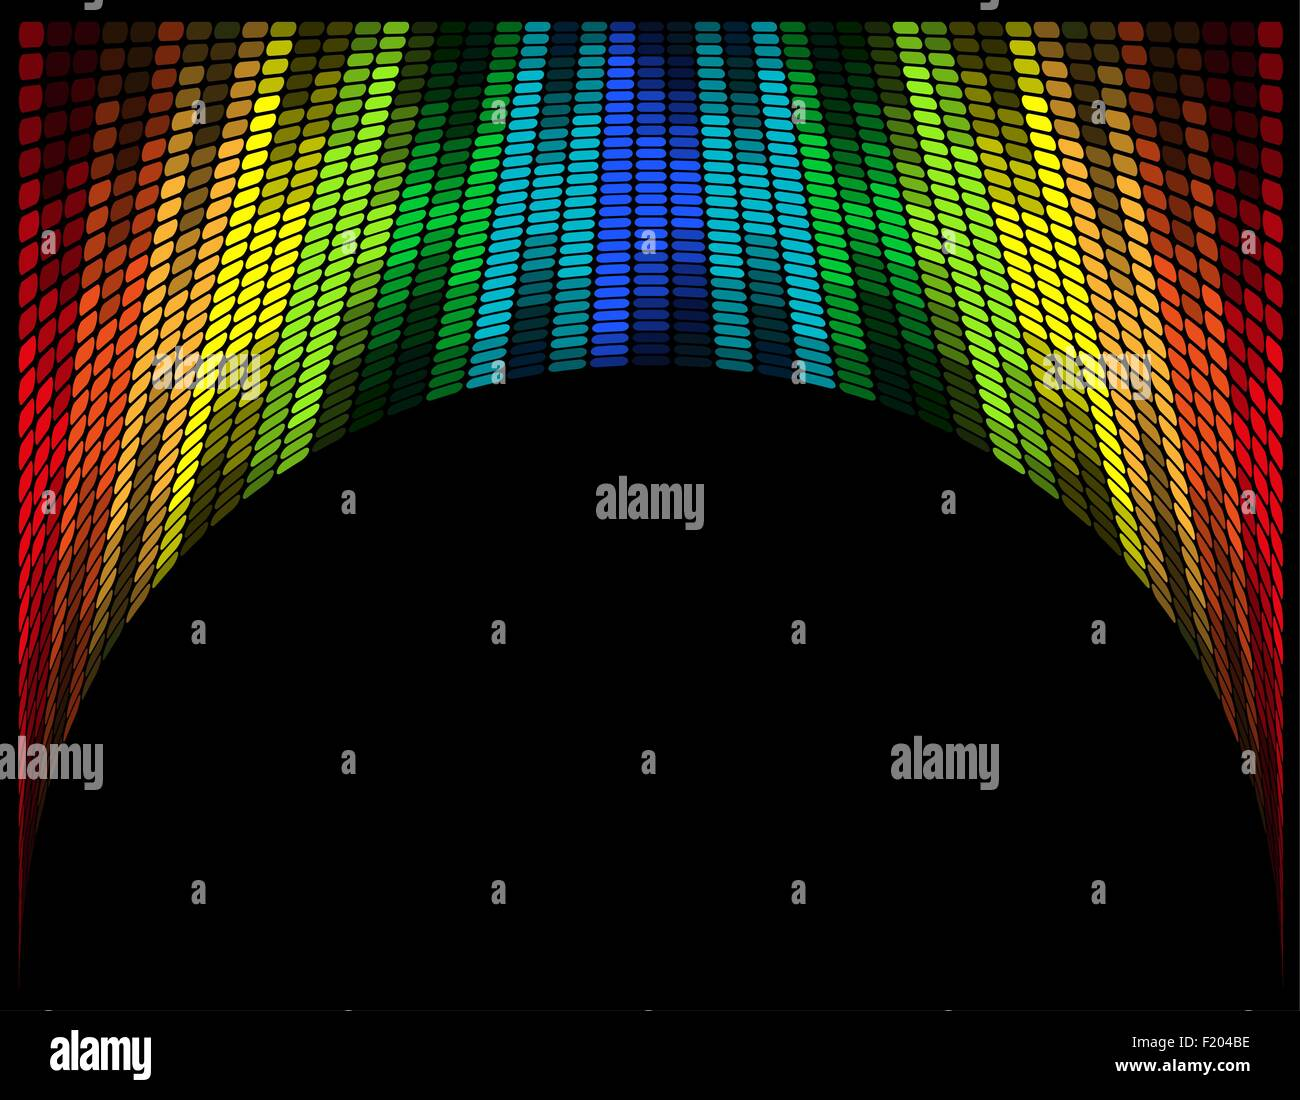 abstract multicolored graphic equalizer vector illustration isolated